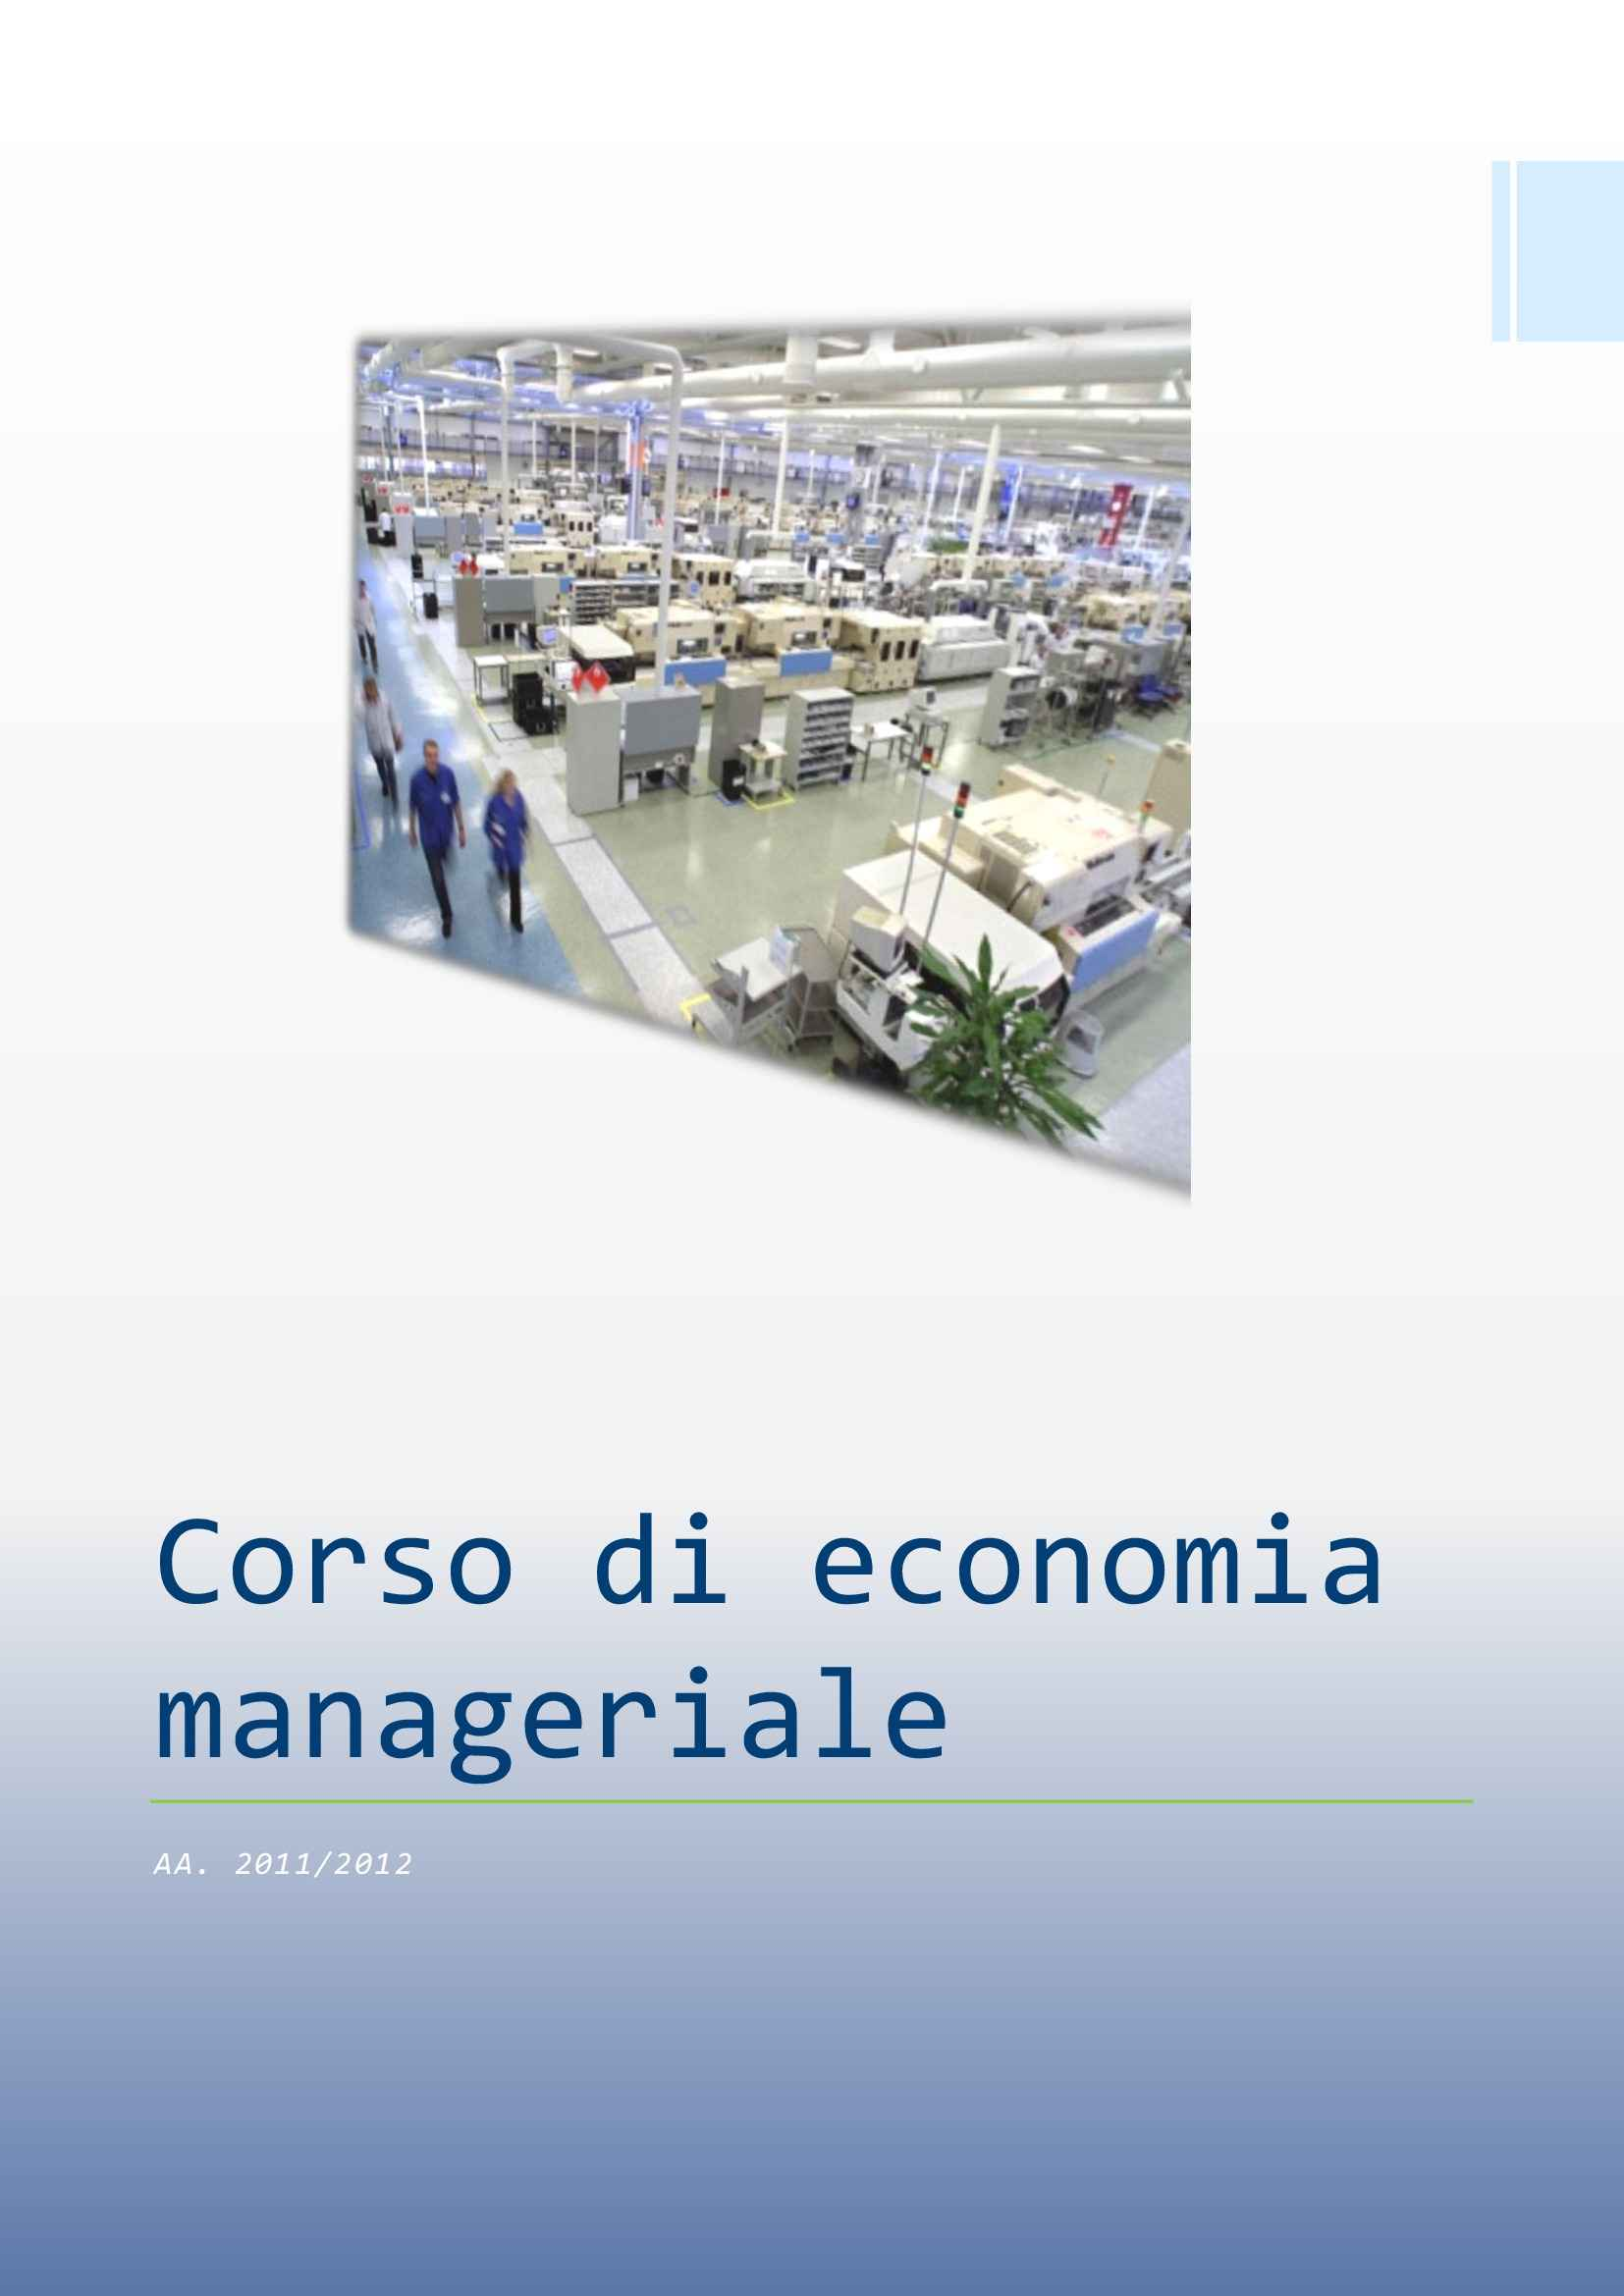 Economia manageriale - Appunti Pag. 1